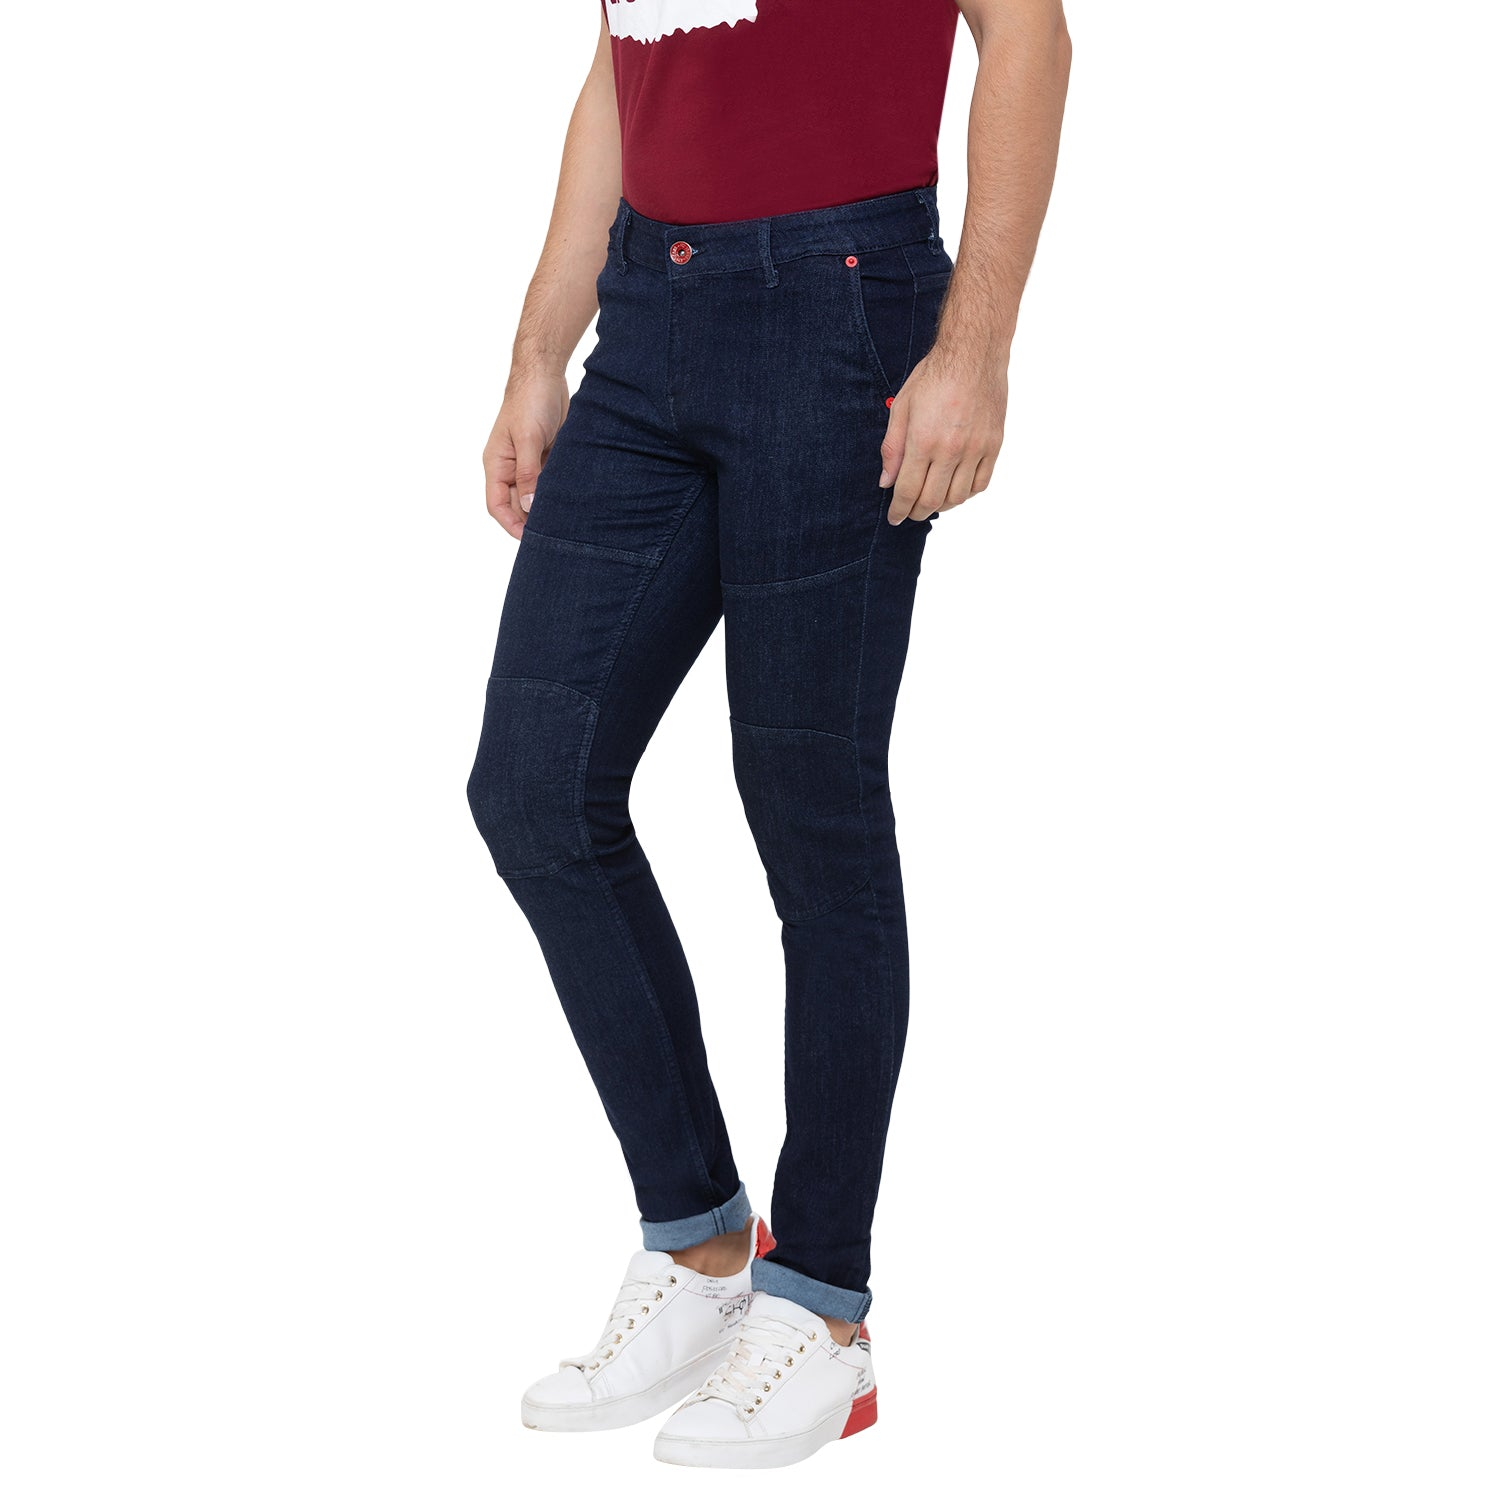 Globus Blue Solid Clean Look Jeans-4